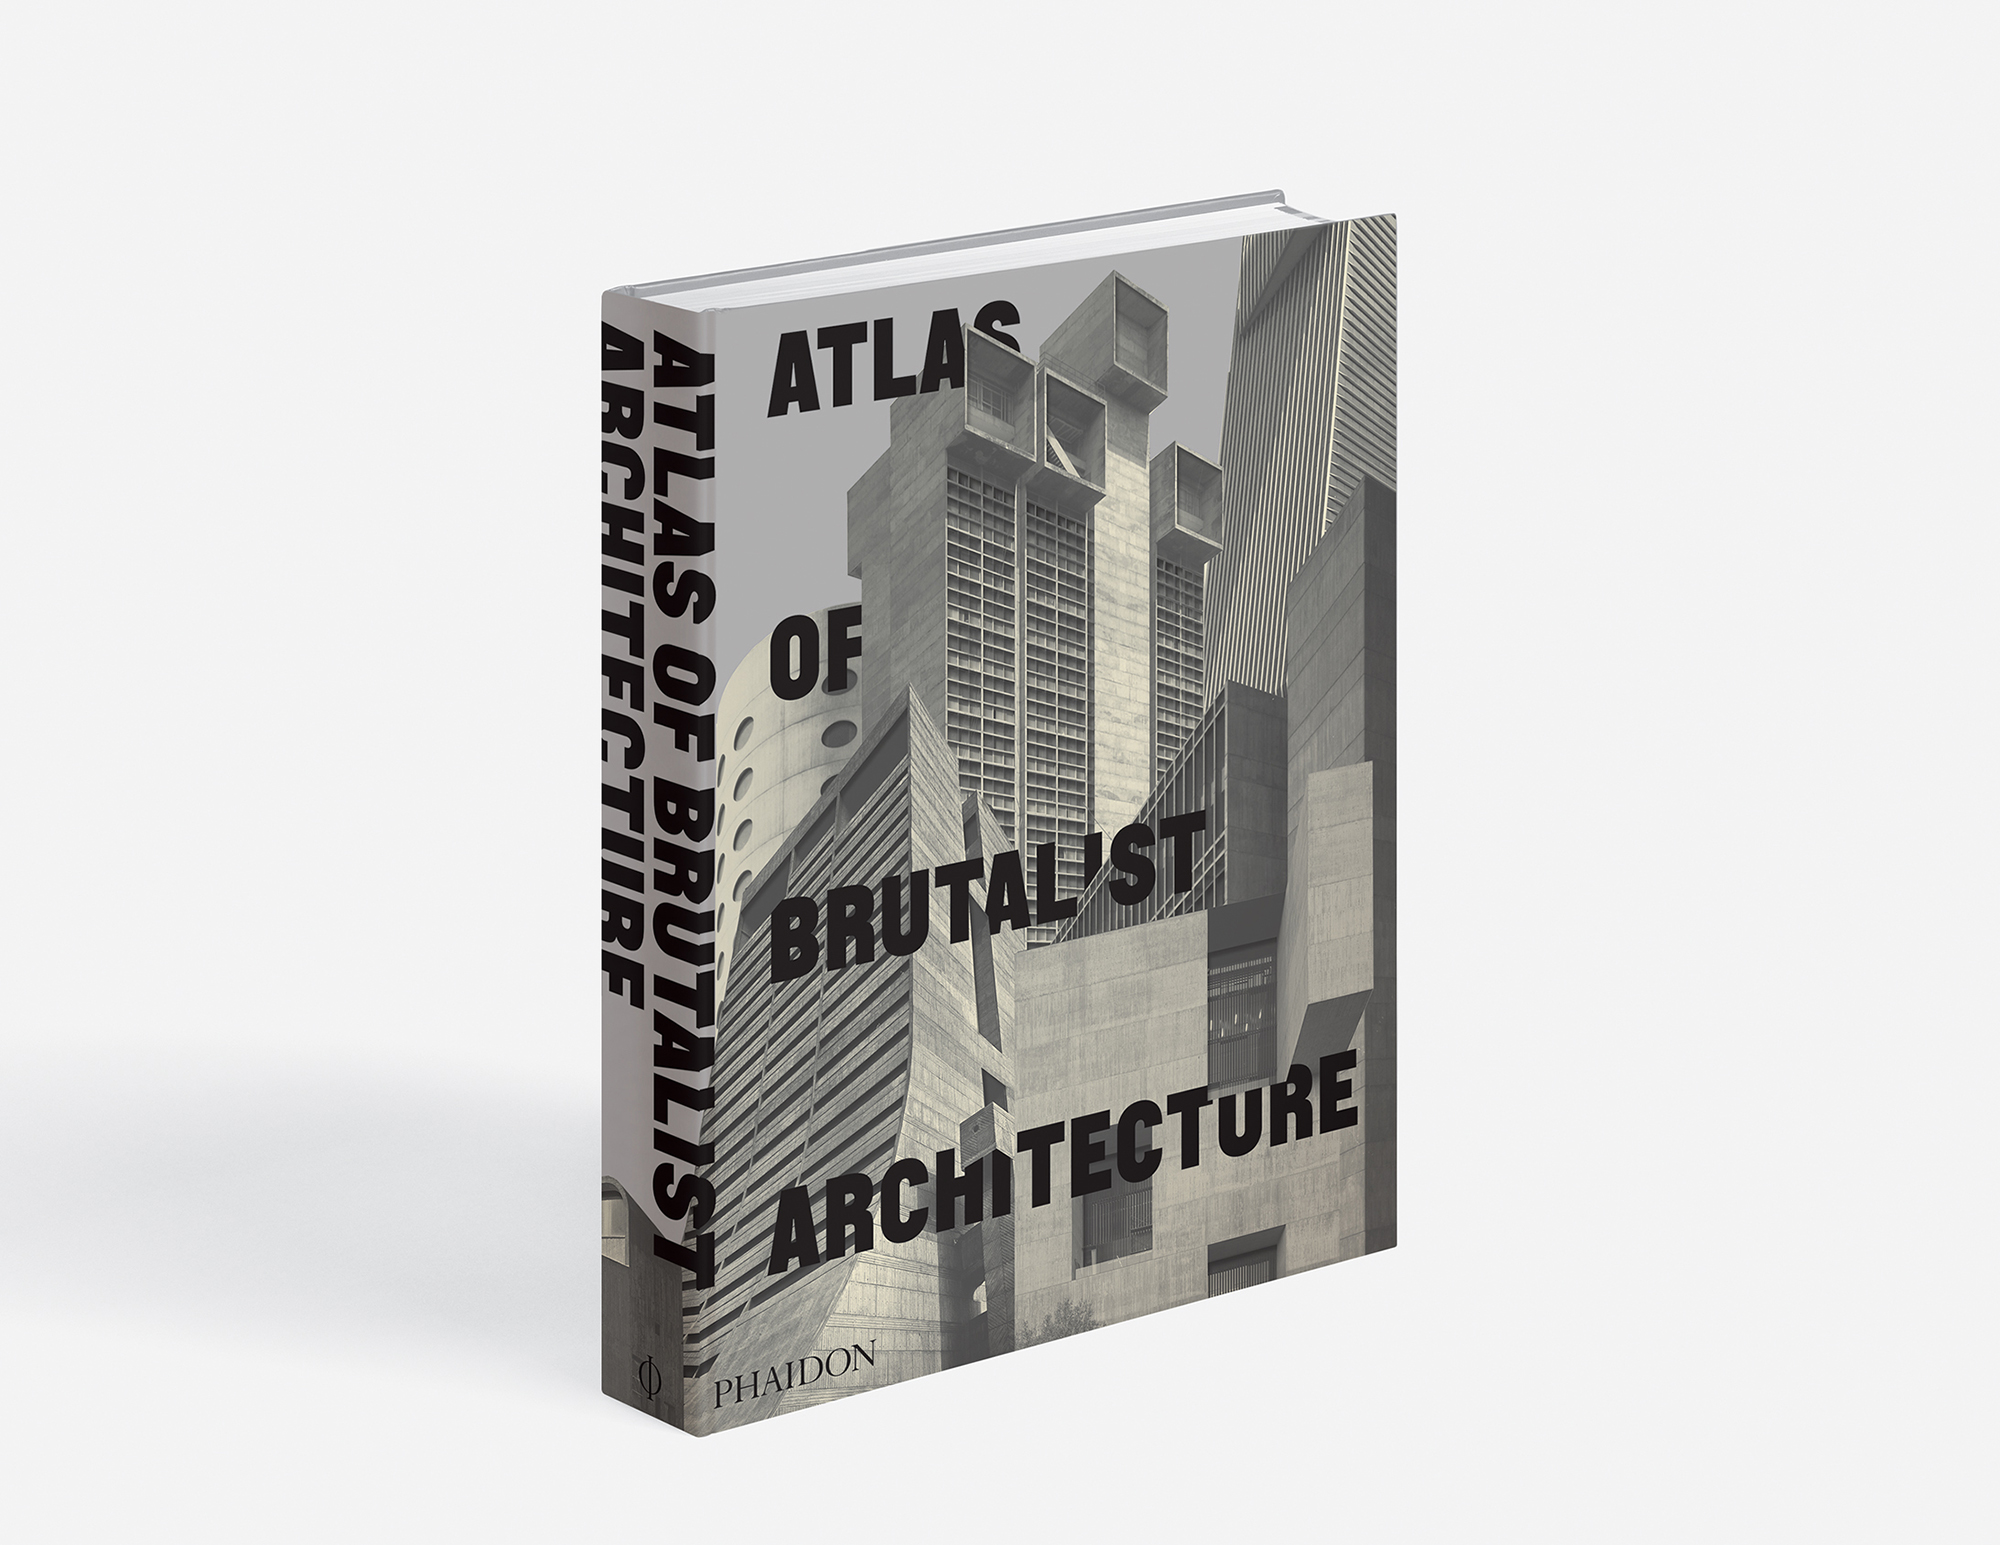 The Atlas of Brutalist Architecture